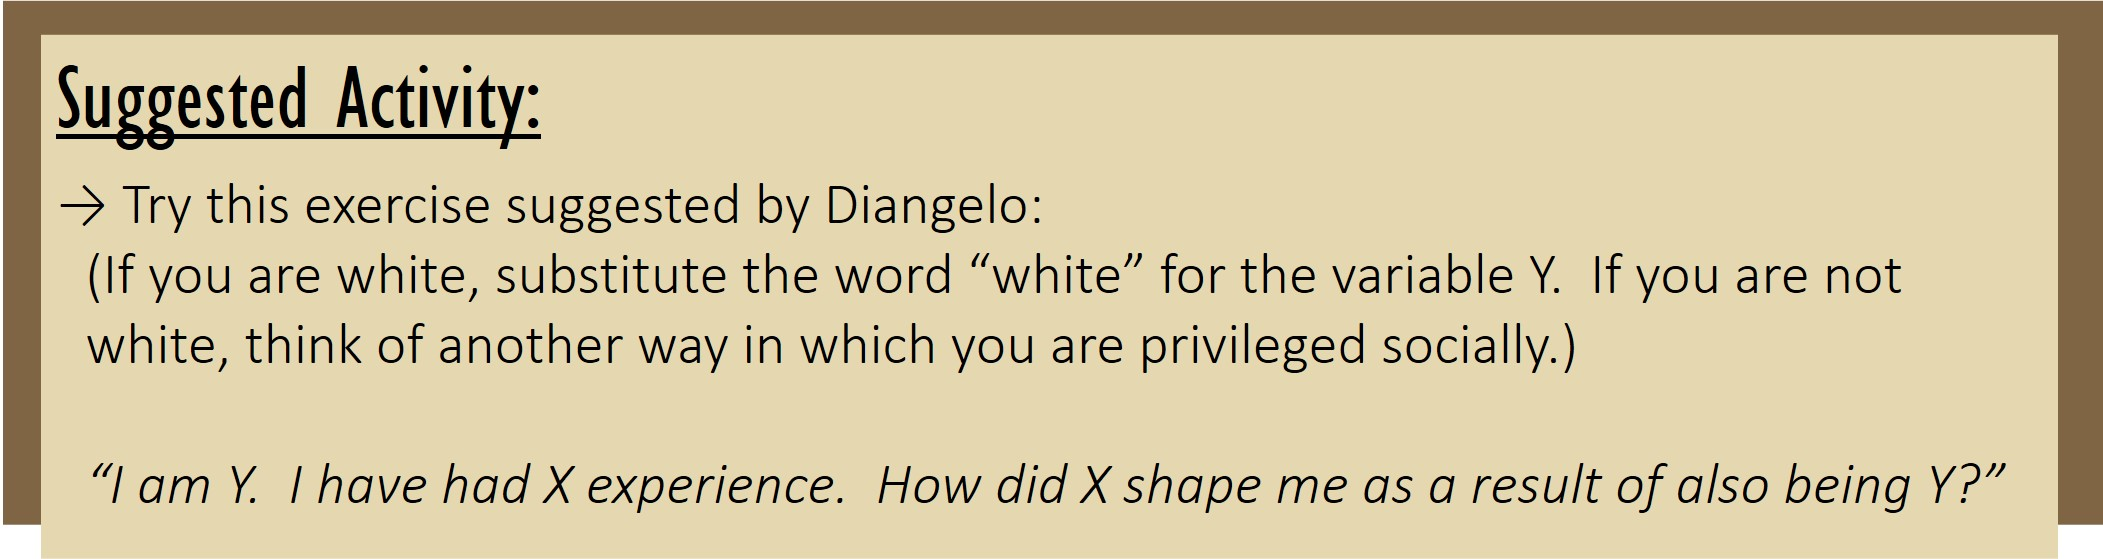 """Suggested Activity: Try this exercise suggested by Diangelo: (If you are white, substitute the word """"white"""" for the variable Y. If you are not white, think of another way in which you are privileged socially.) """"I am Y. I have had X experience. How did X shape me as a result of also being Y?"""""""